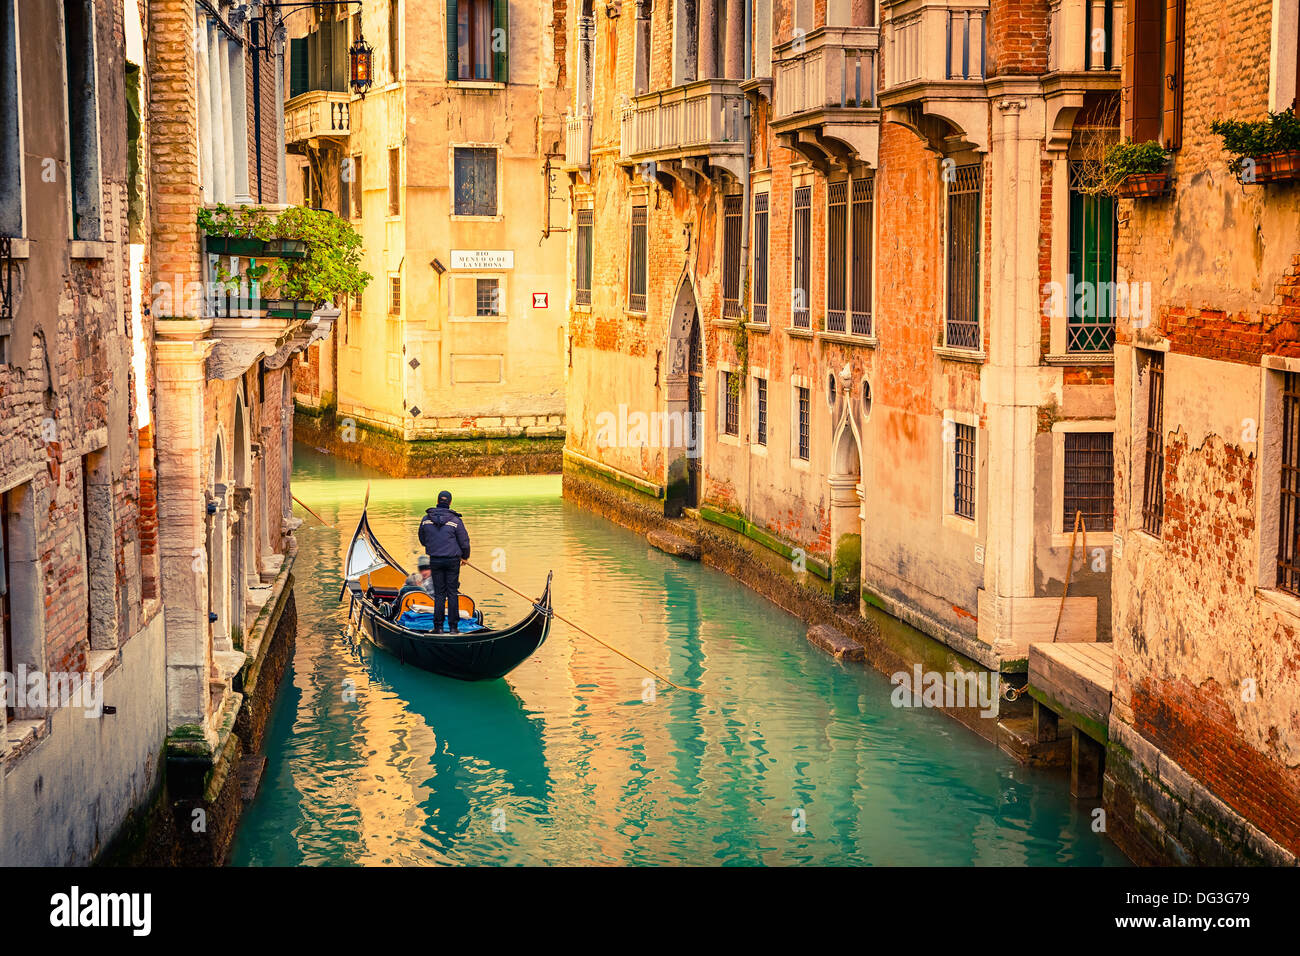 Canal in Venice Photo Stock